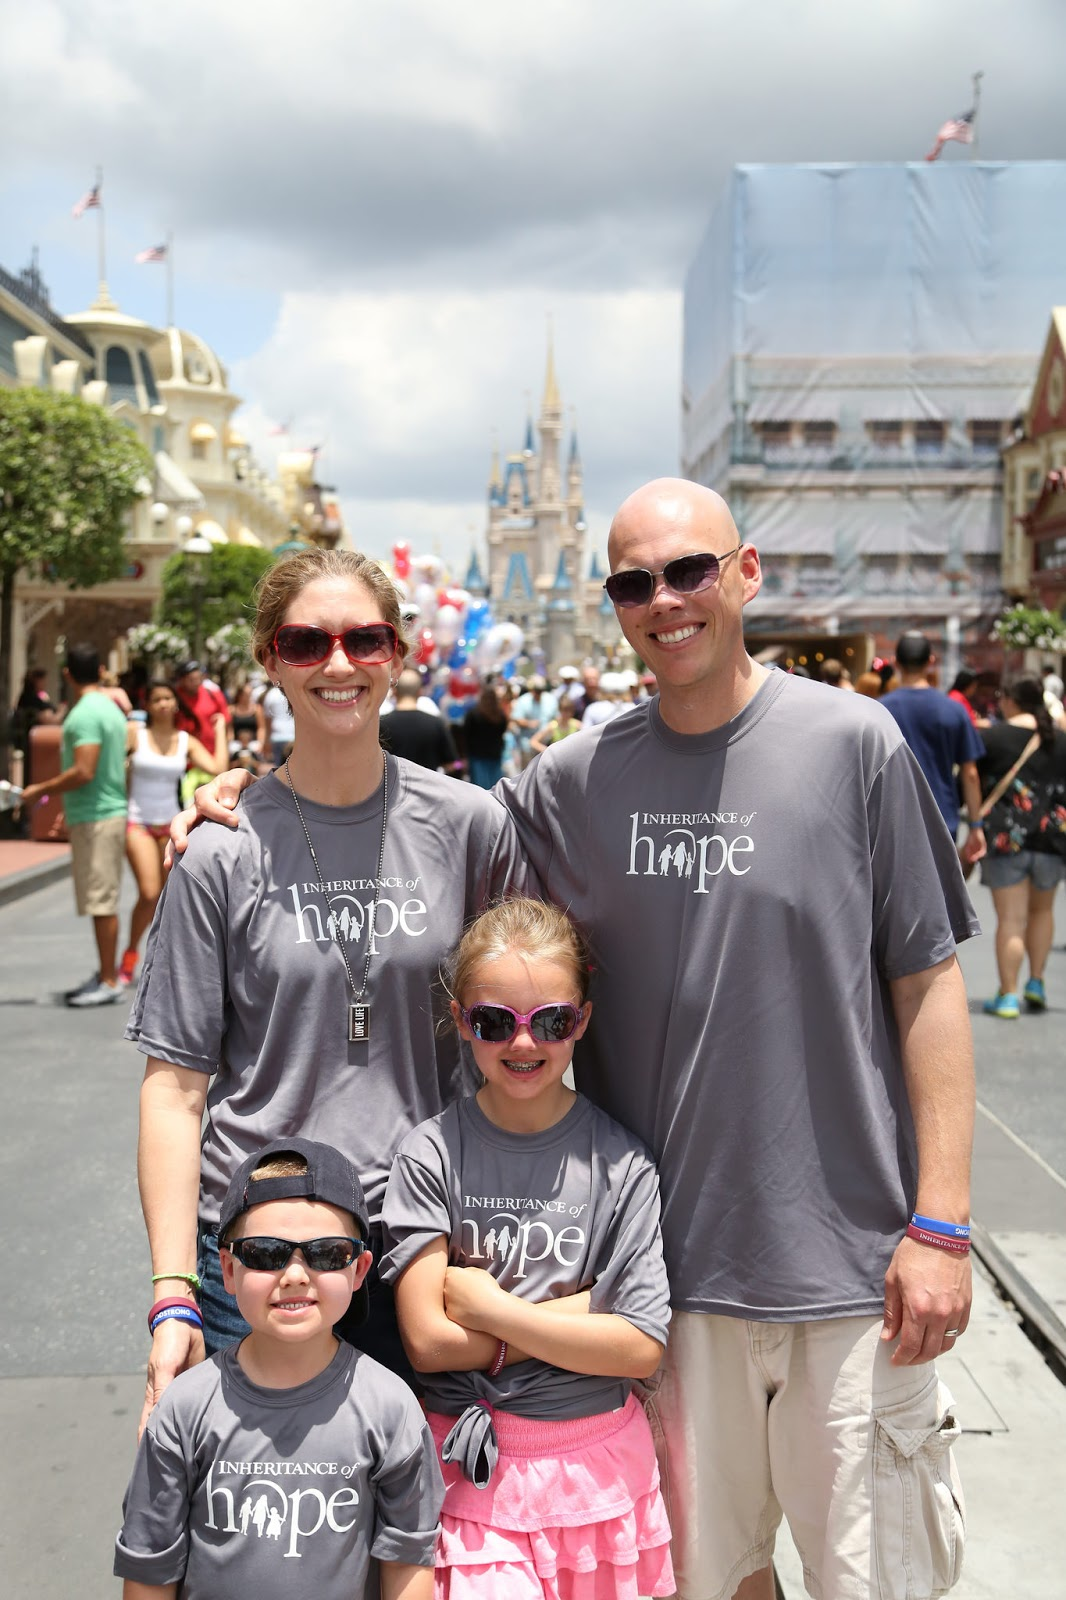 Precious family memories made at Disney